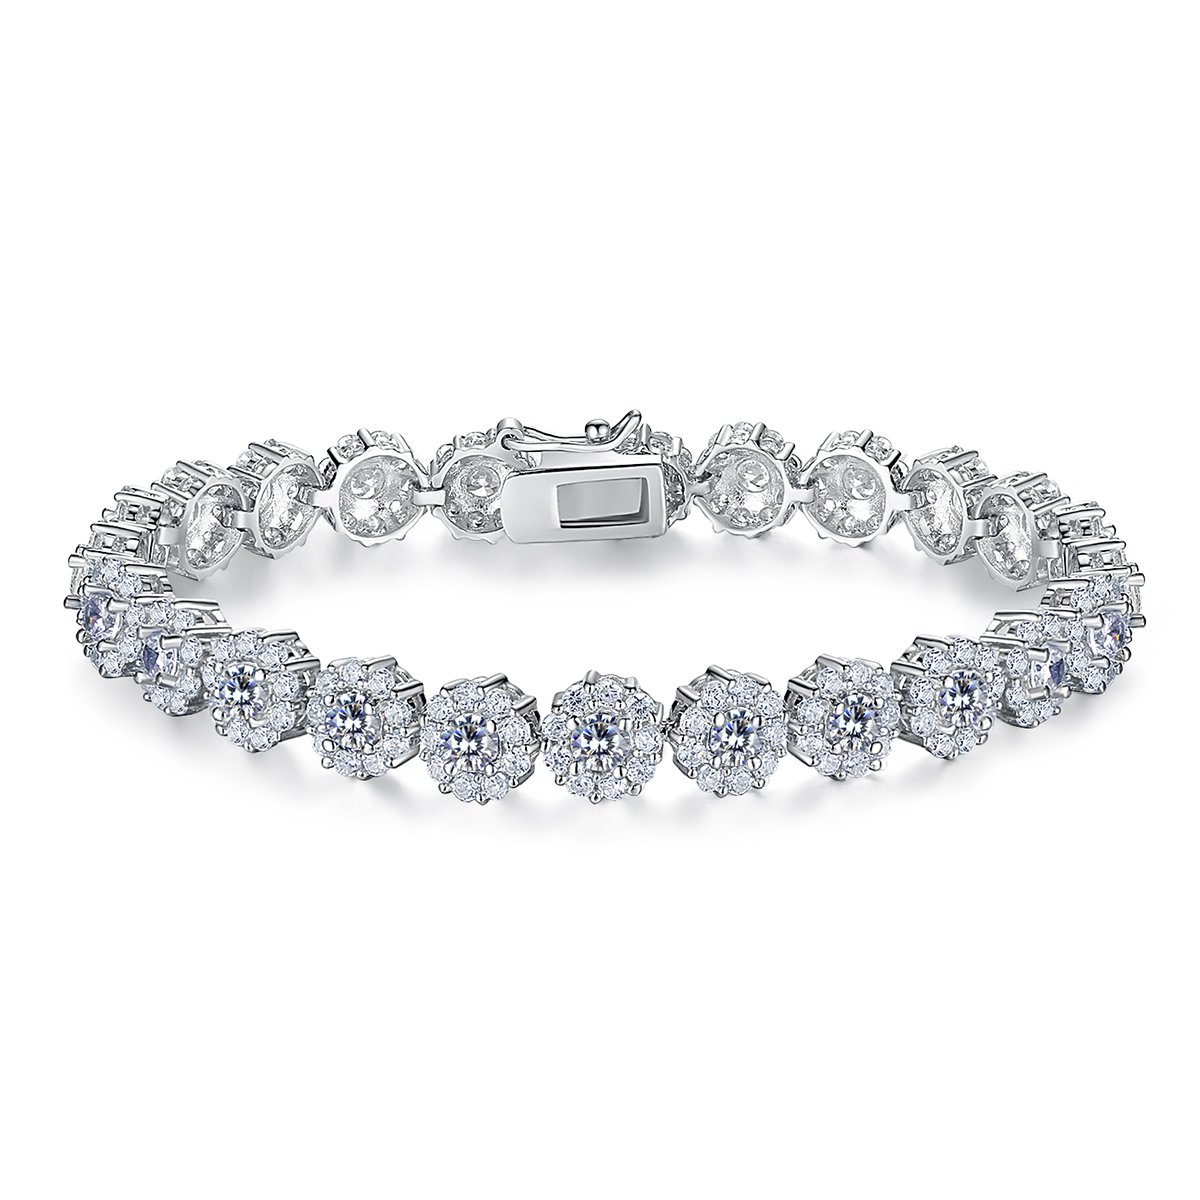 BAMOER Classic Luxury White Gold Plated Bracelet with Sparkling White Cubic Zirconia Stones for Women Grils Perfect Gift for Her 6.7 Inches